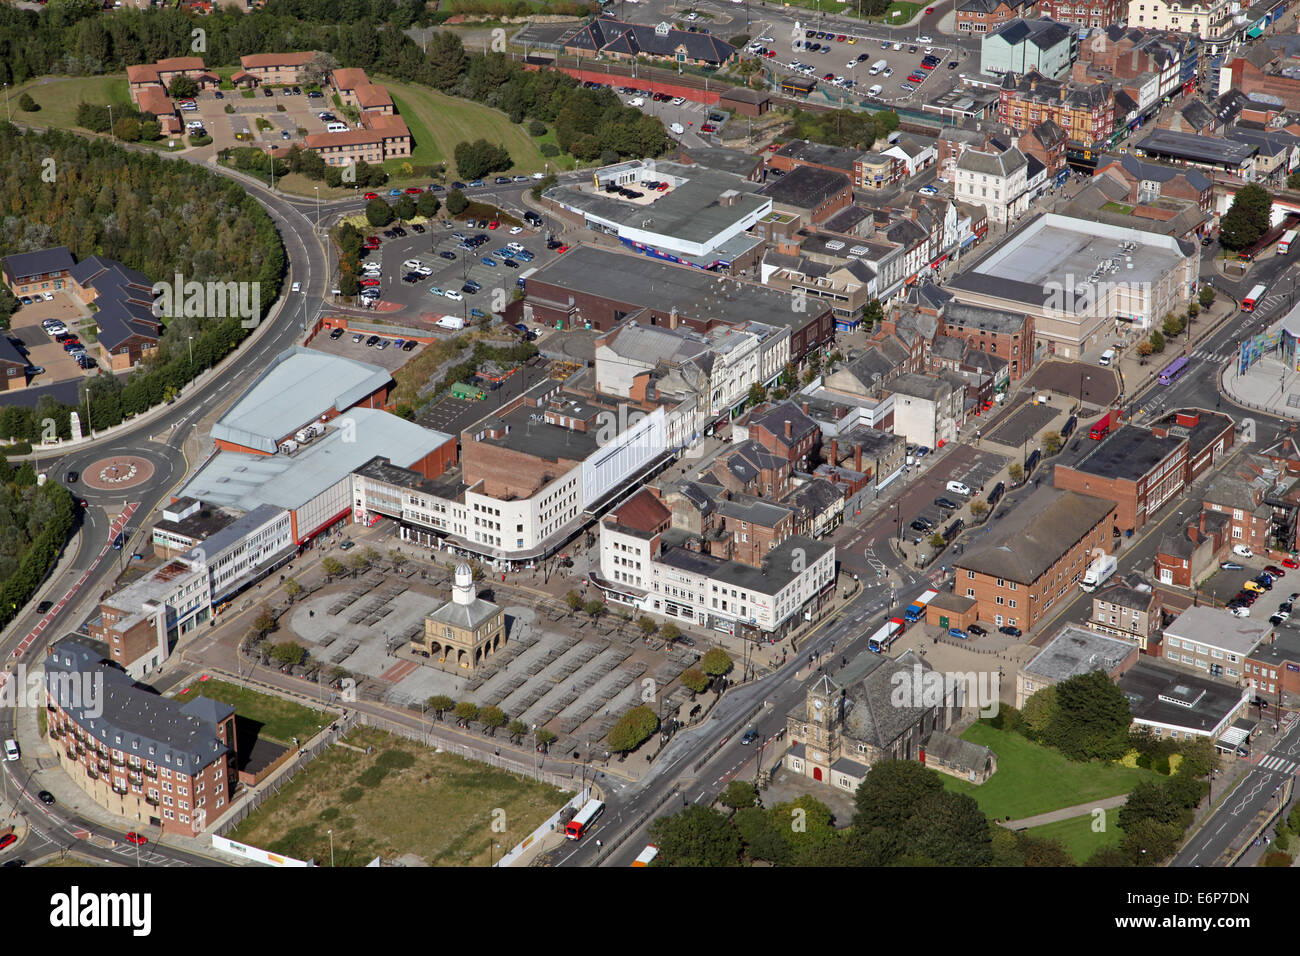 aerial view of South Shields town centre, UK - Stock Image